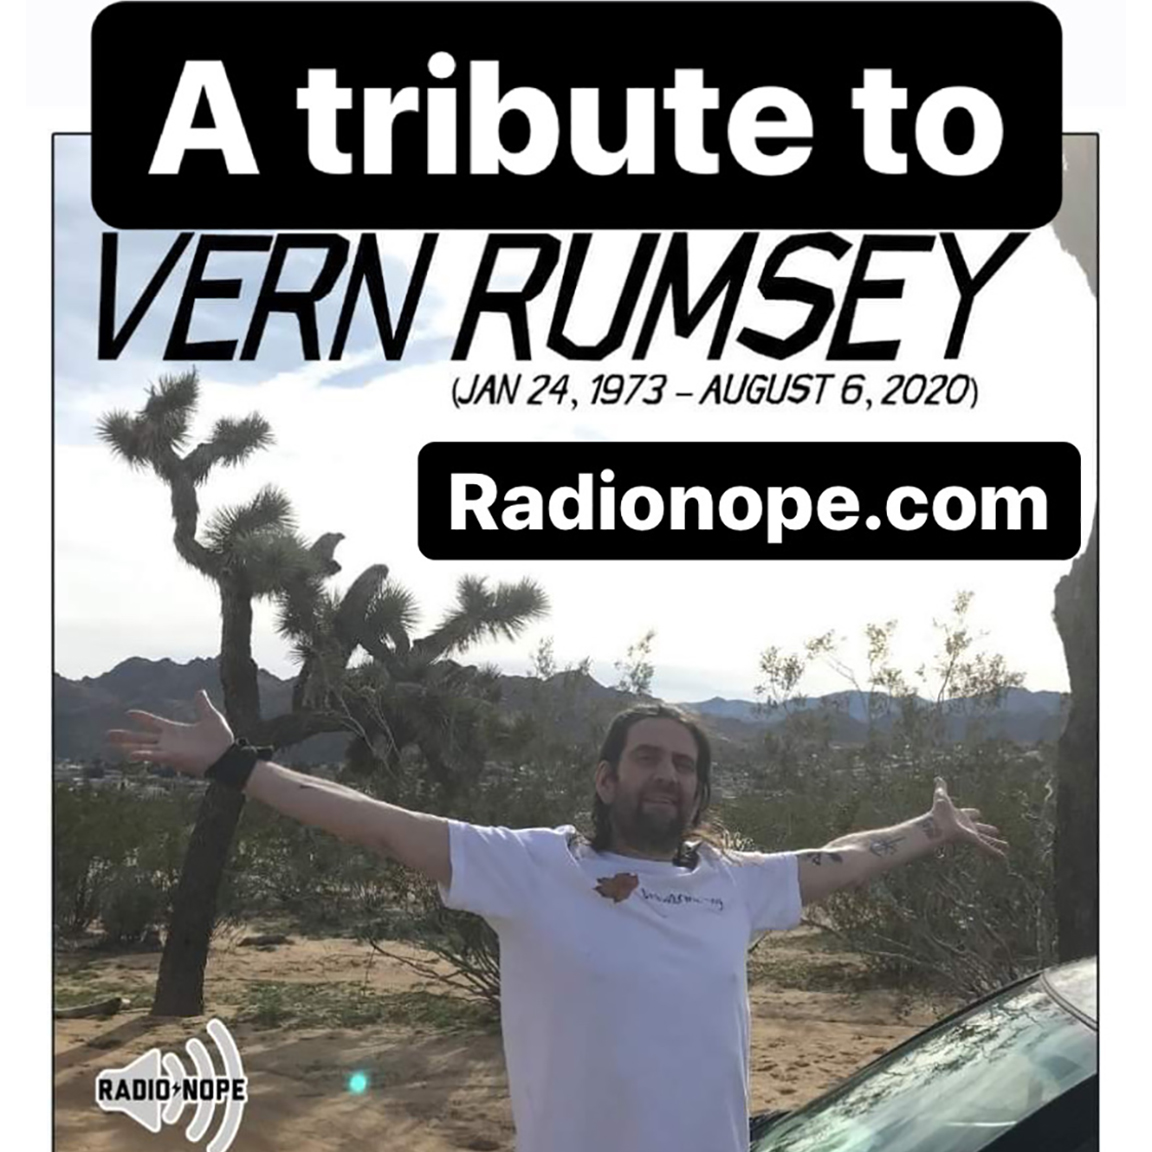 A Tribute to Vern Rumsey (1973-2020)